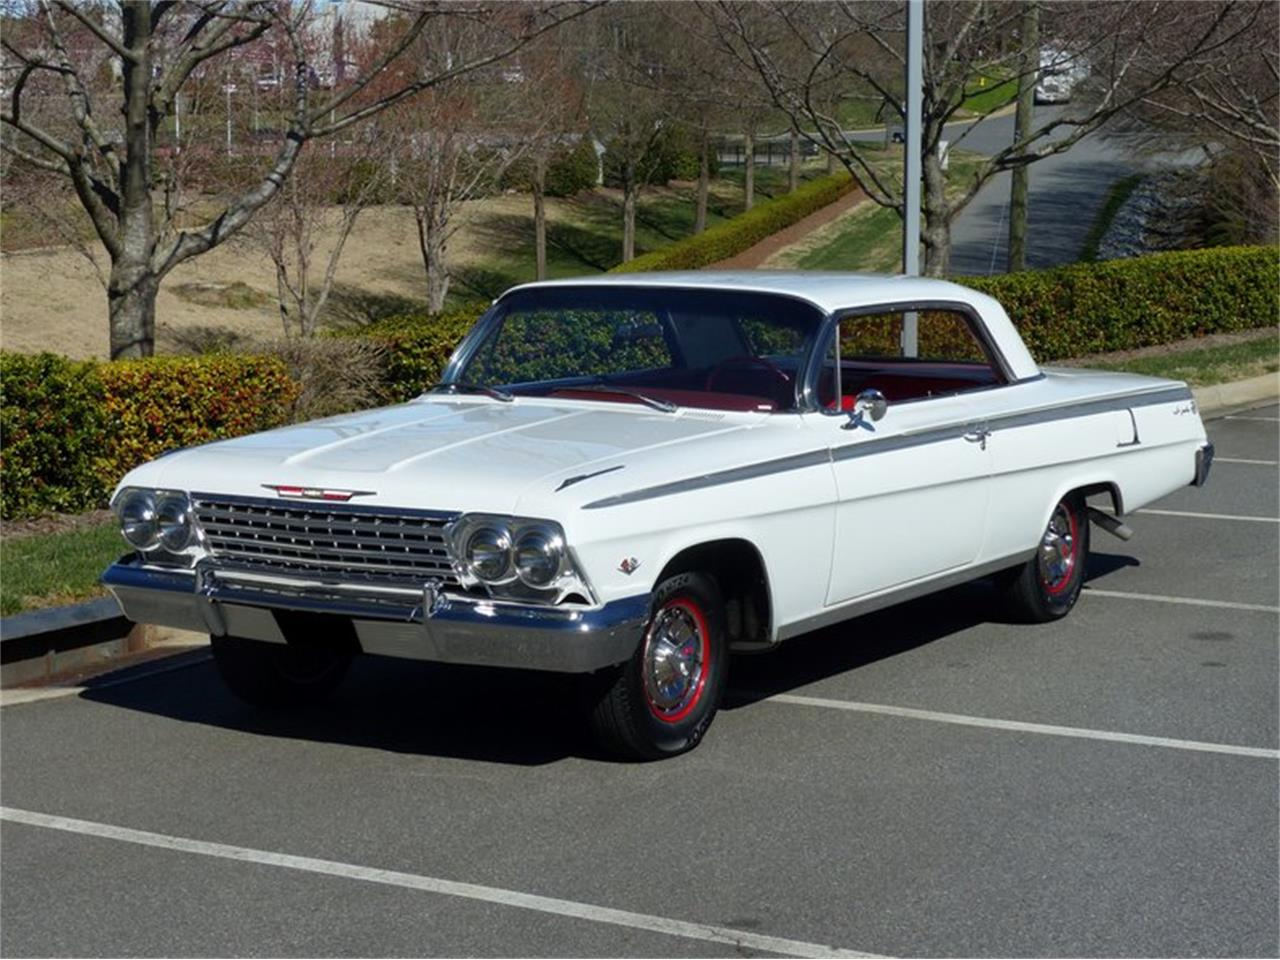 Large Picture of Classic 1962 Chevrolet Impala located in Greensboro North Carolina Auction Vehicle Offered by GAA Classic Cars Auctions - QJ58